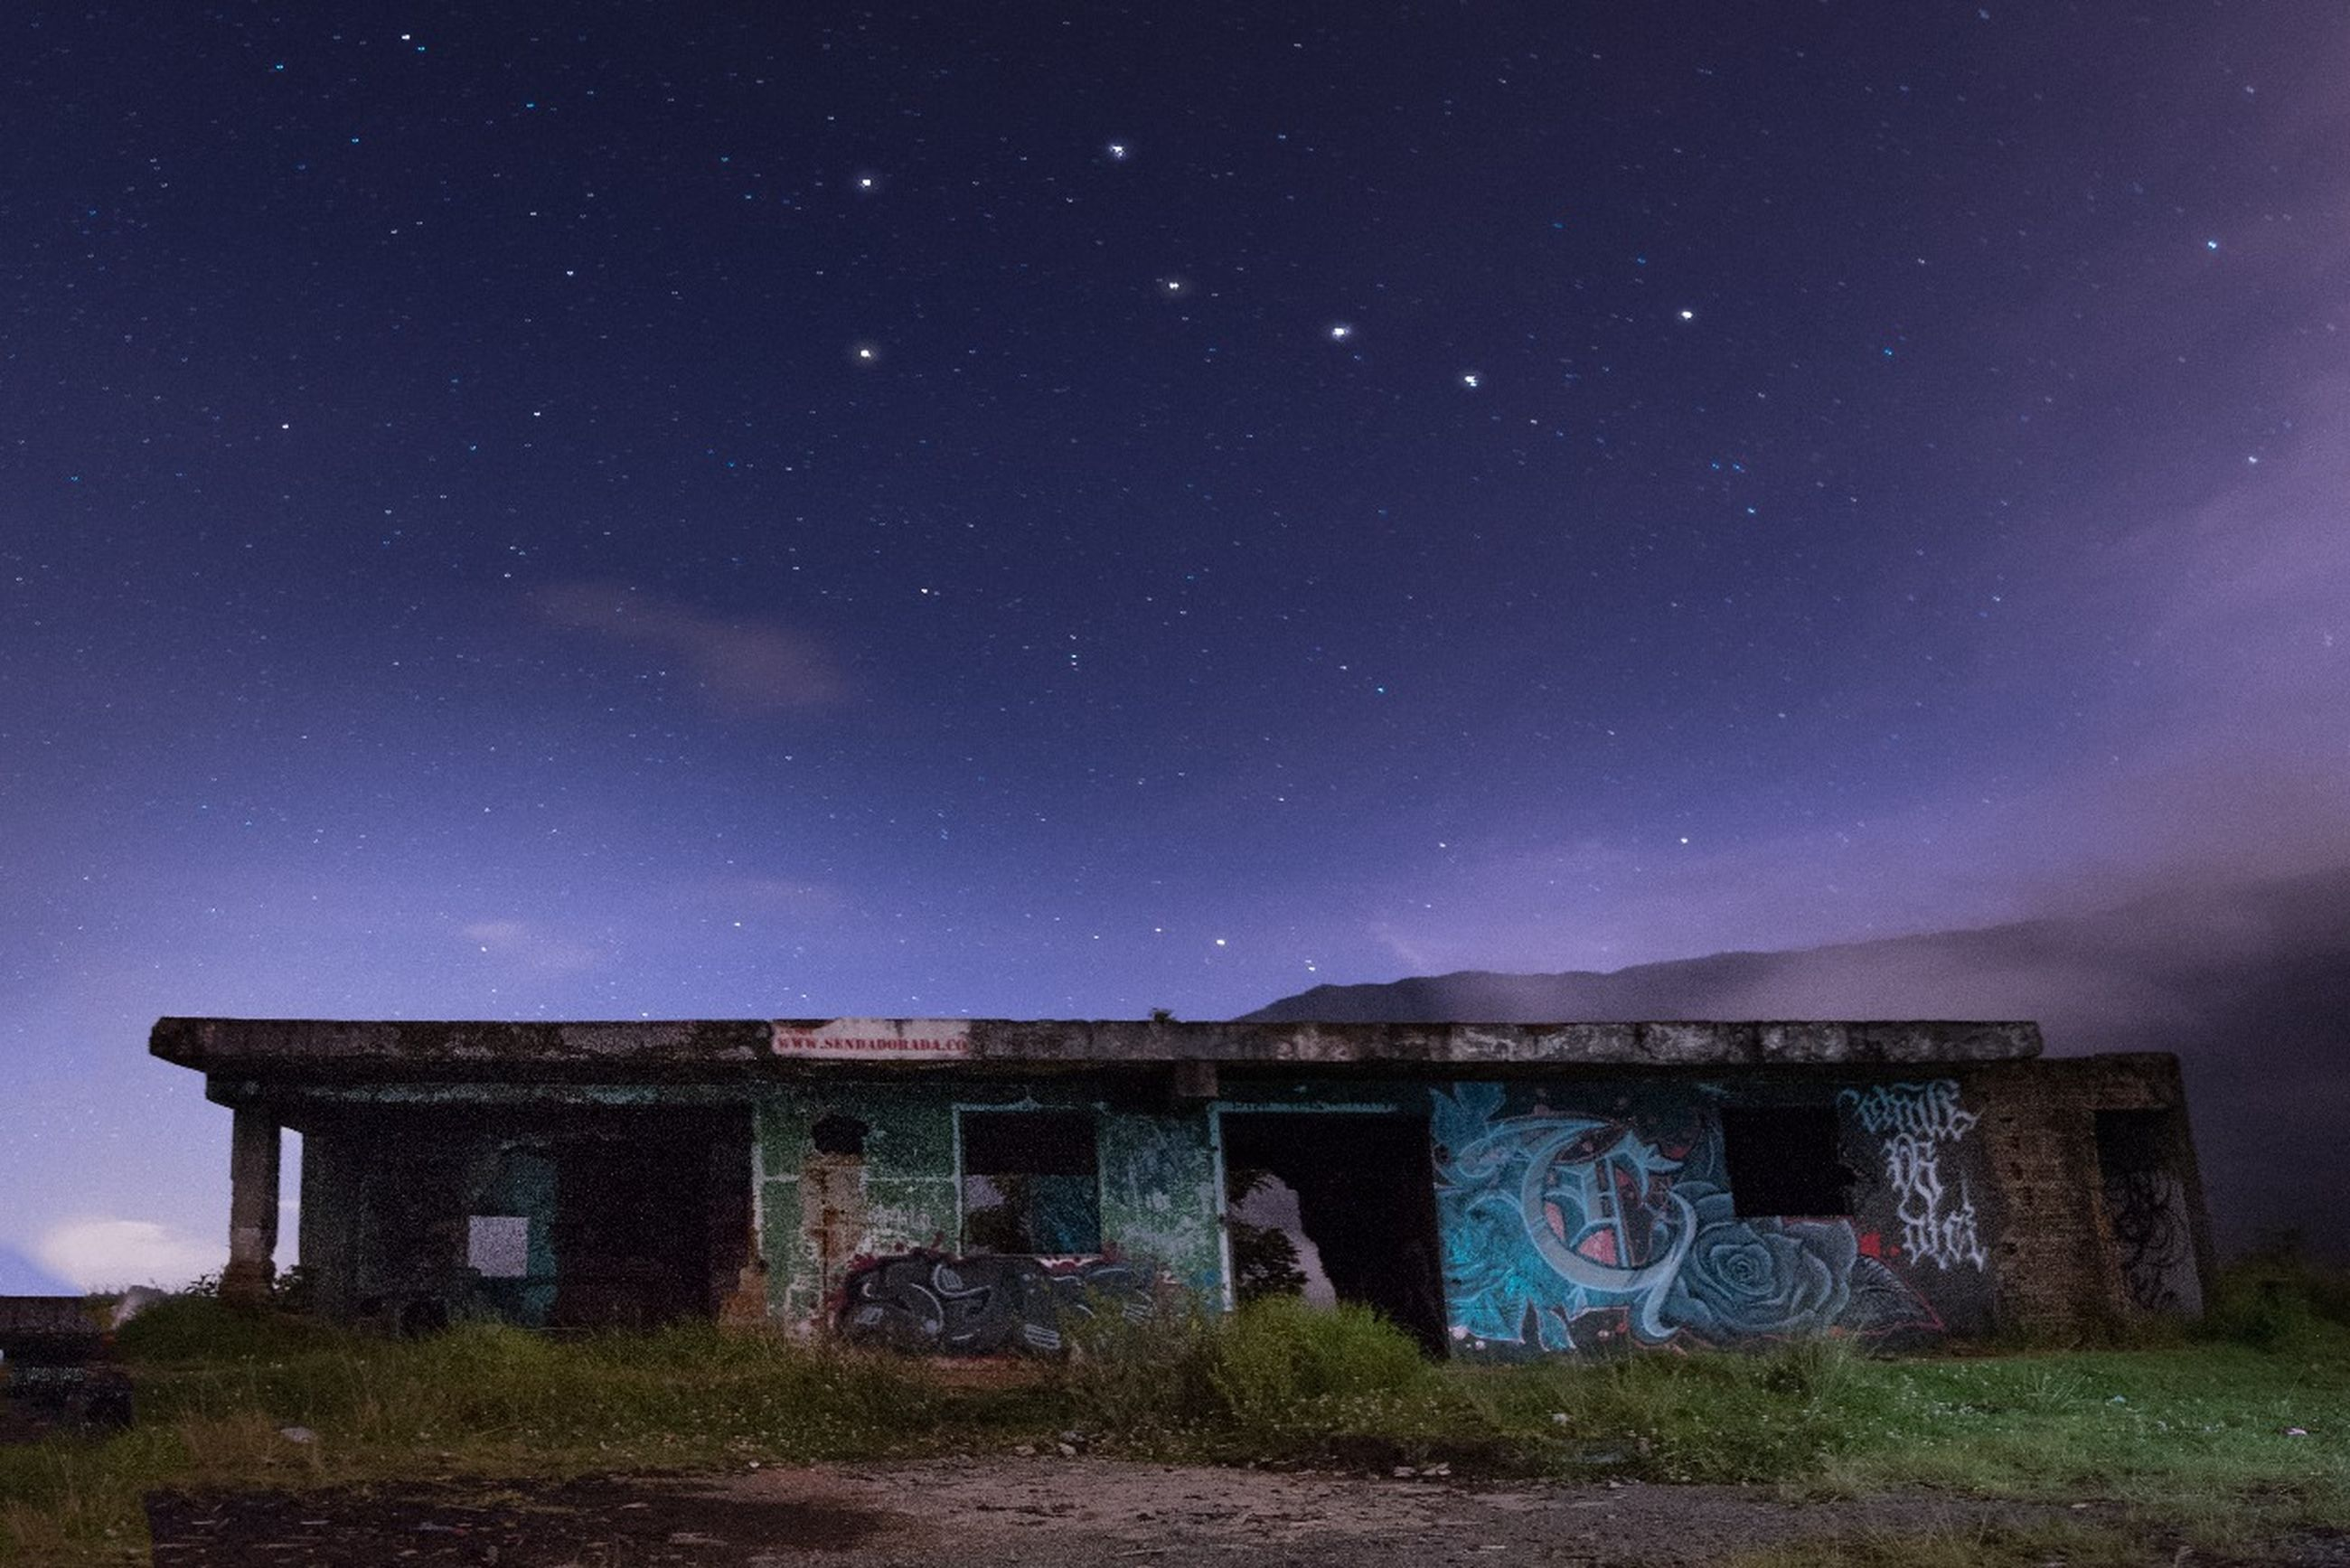 astronomy, sky, architecture, abandoned, built structure, night, no people, outdoors, star - space, building exterior, grass, starry, galaxy, nature